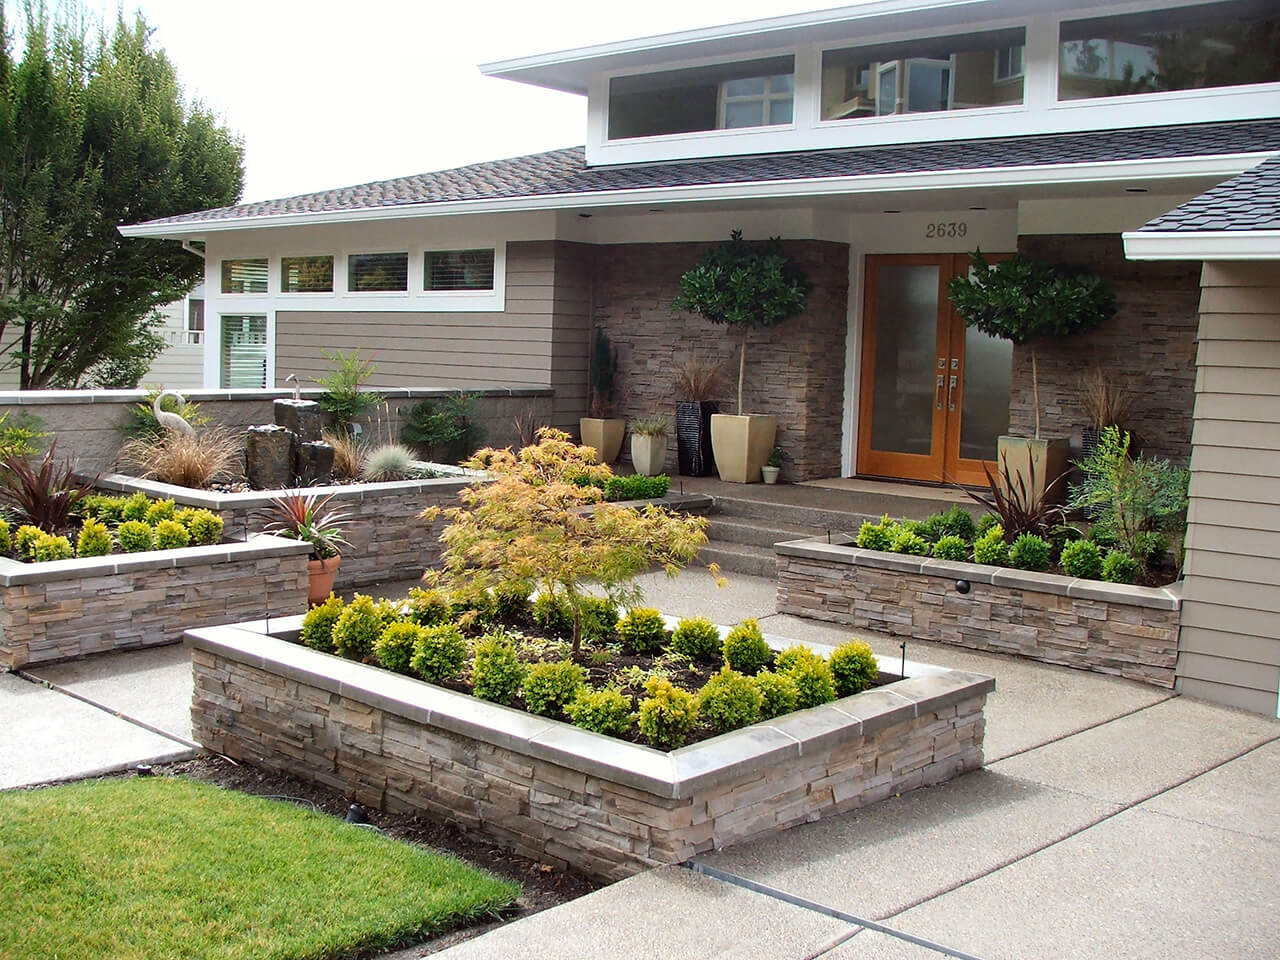 20 brilliant front garden landscaping ideas style motivation for Front garden landscape ideas